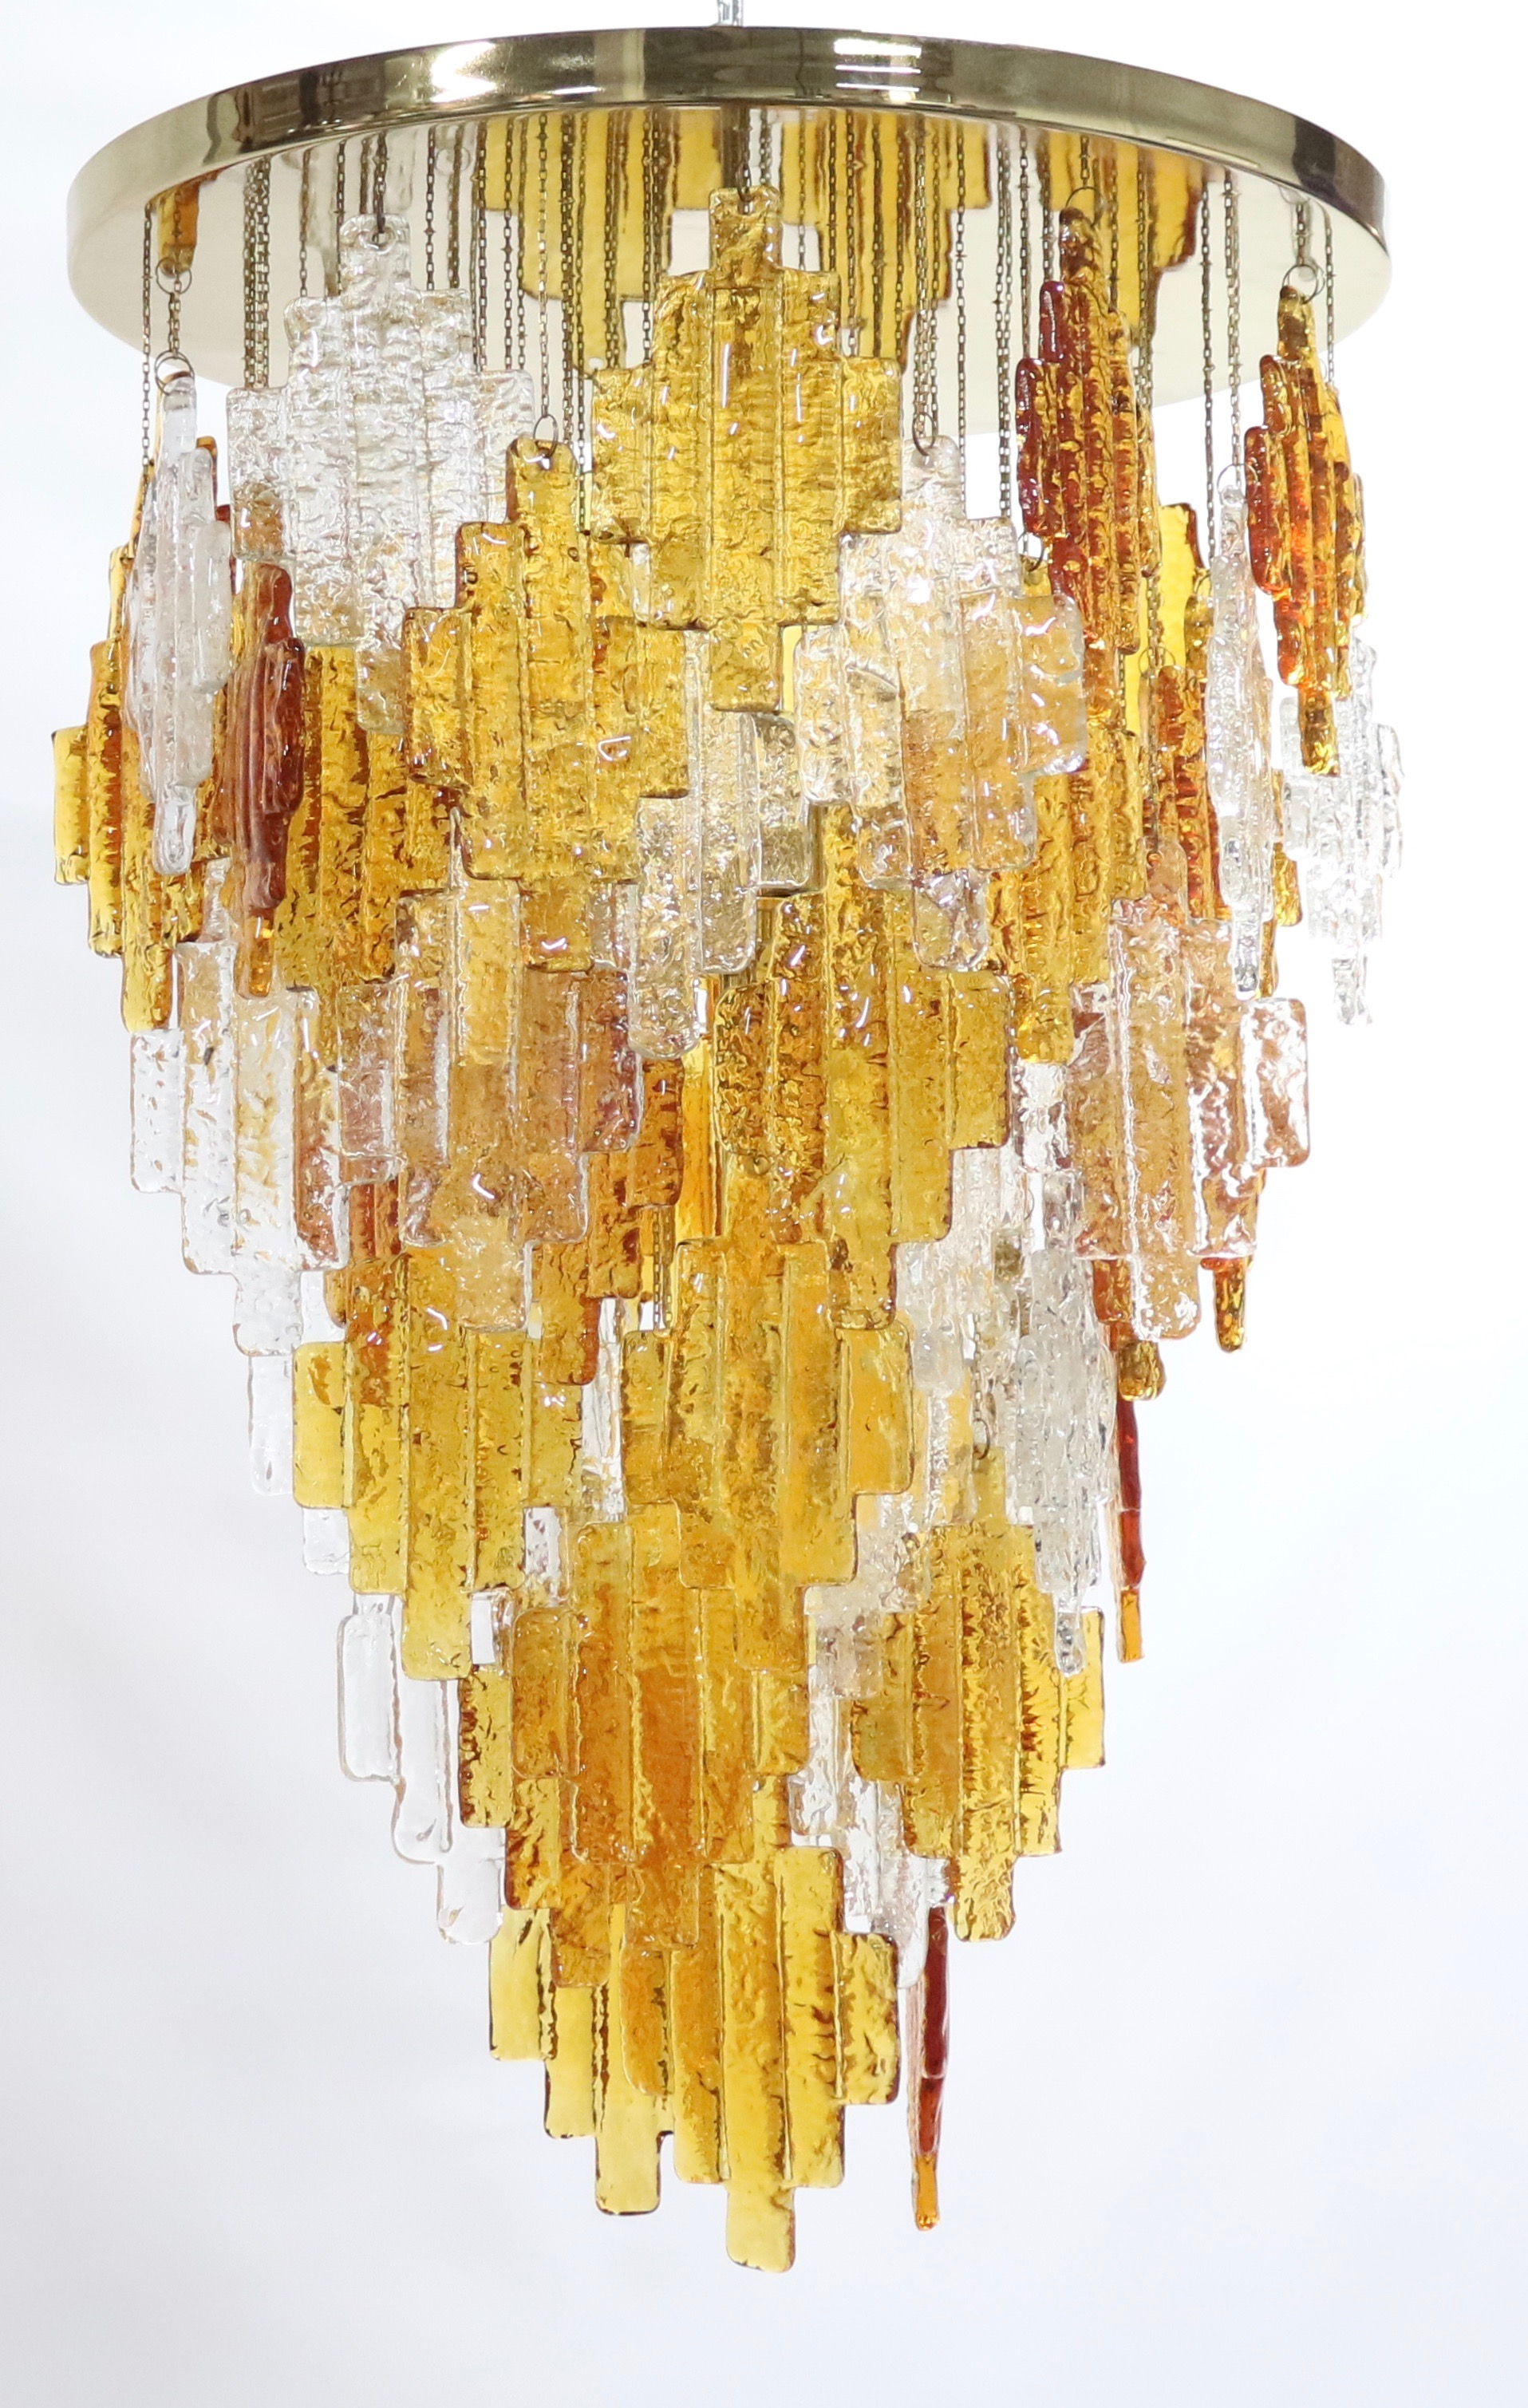 Albano Poli For Poliarte Italian Midcentury Murano Glass Regarding Albano 4 Light Crystal Chandeliers (Image 10 of 30)